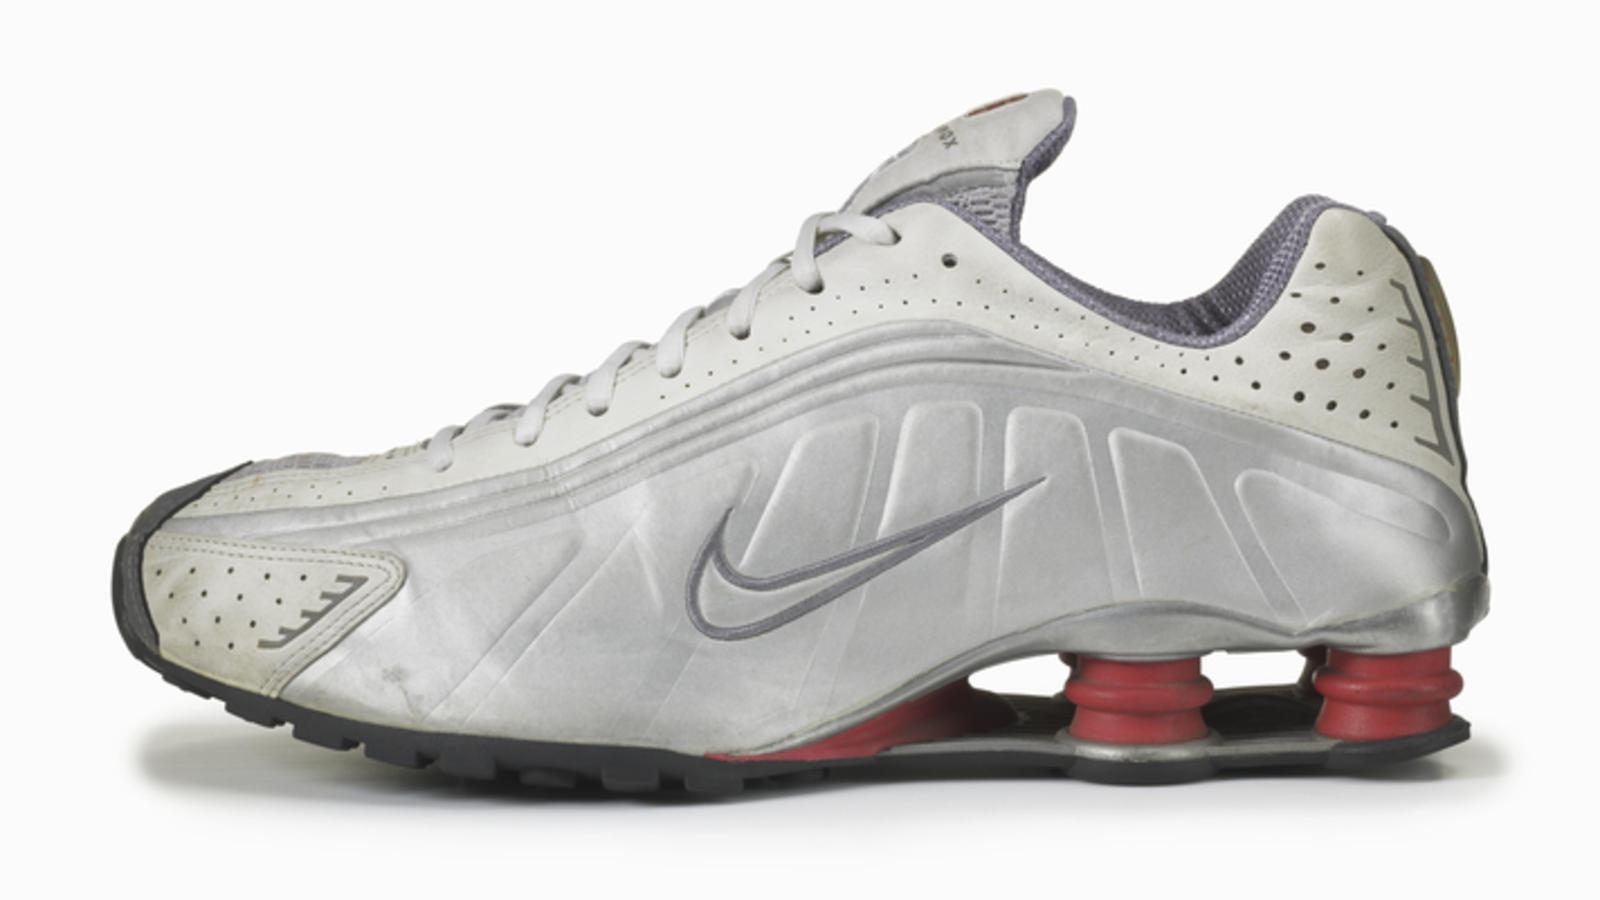 Best Price Nike Shox Shoes